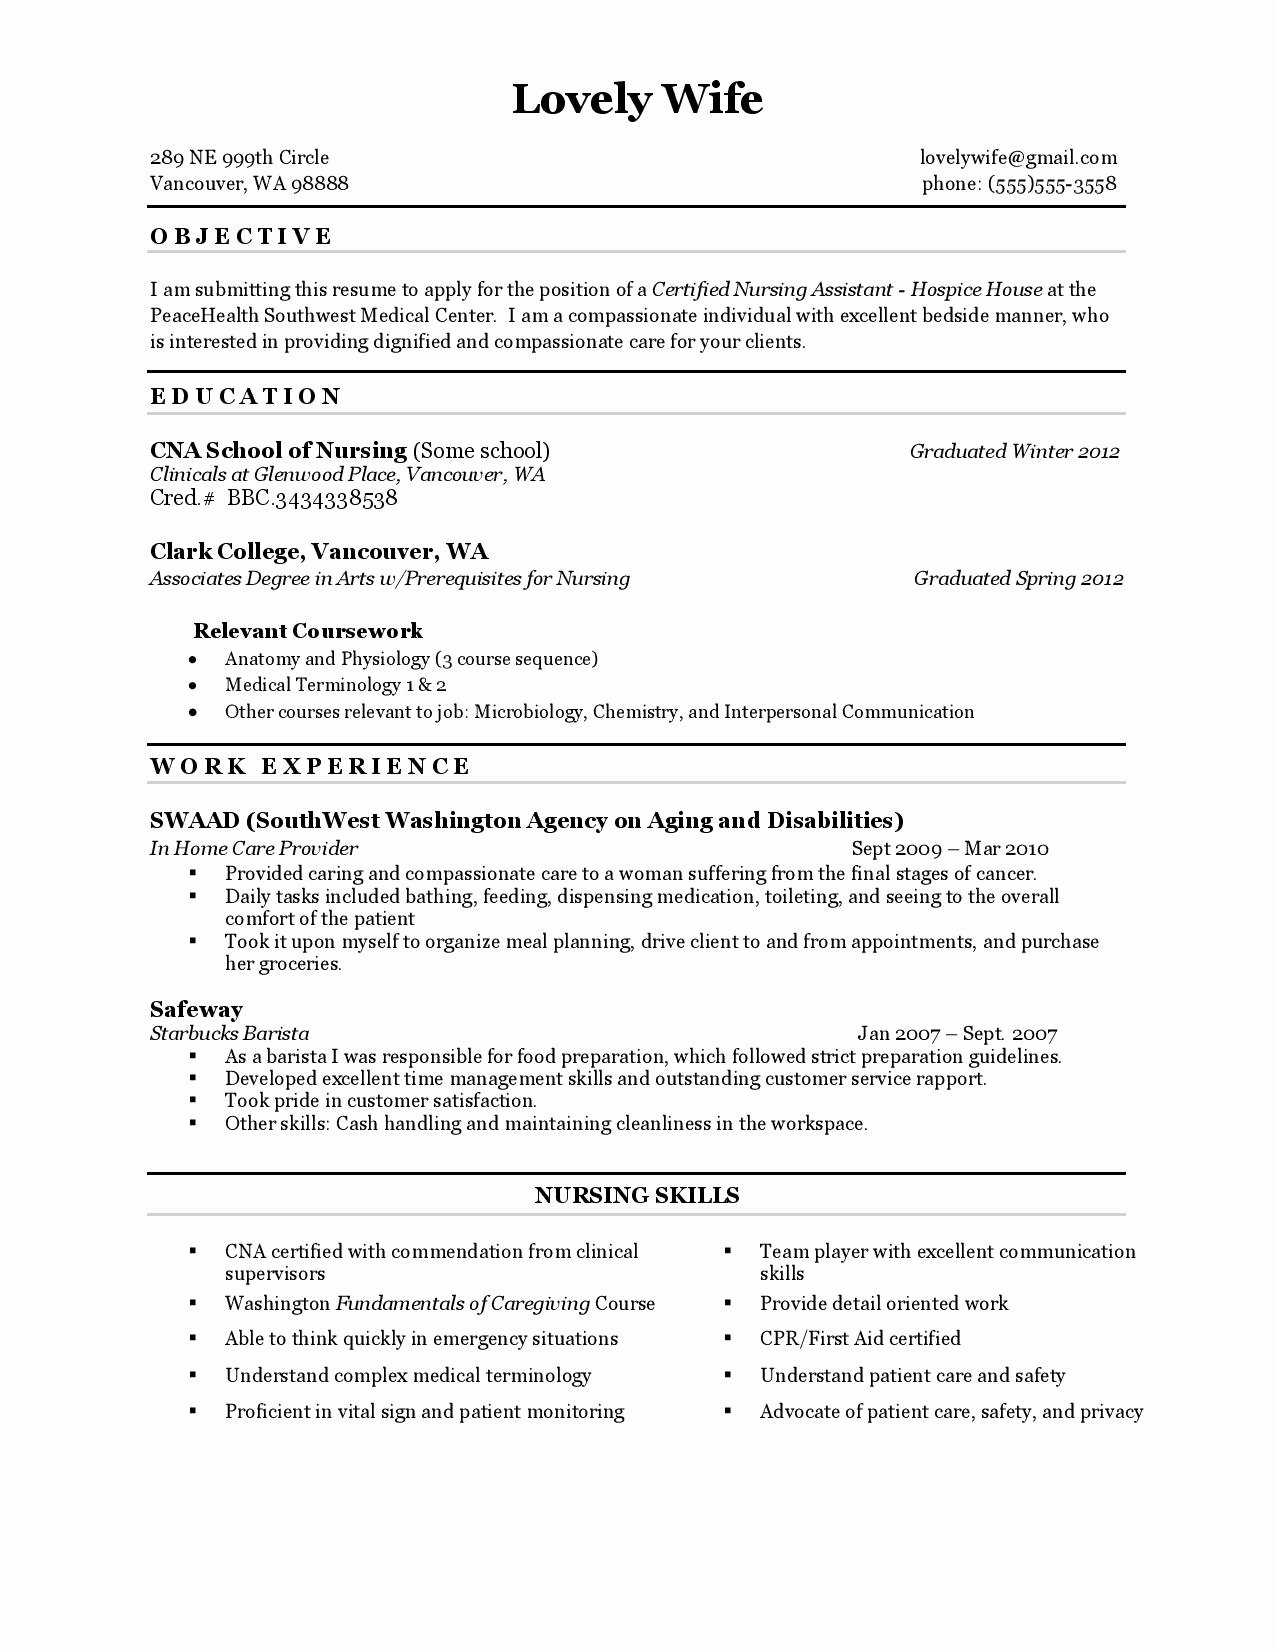 Resume for Cna with Experience Entry Level Examples Resume